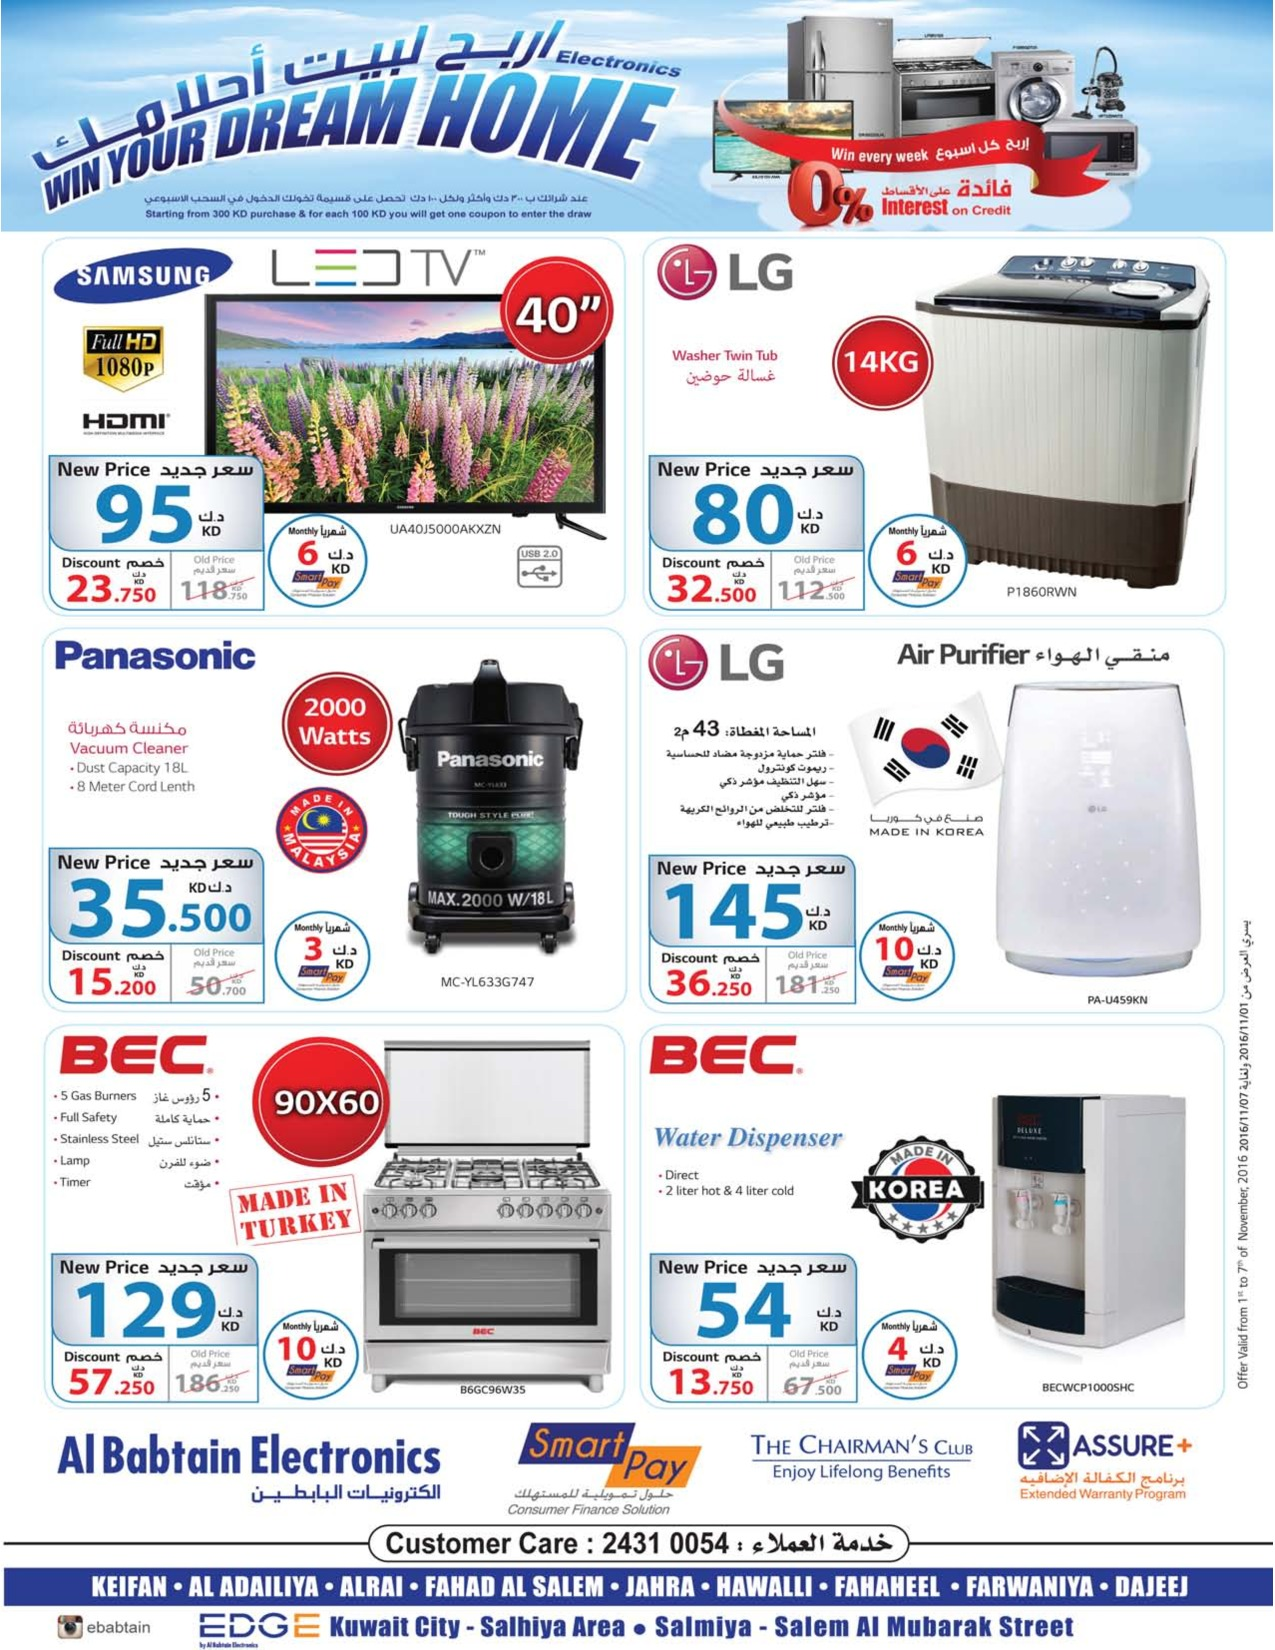 win-your-dreamhome-electronics-kuwait